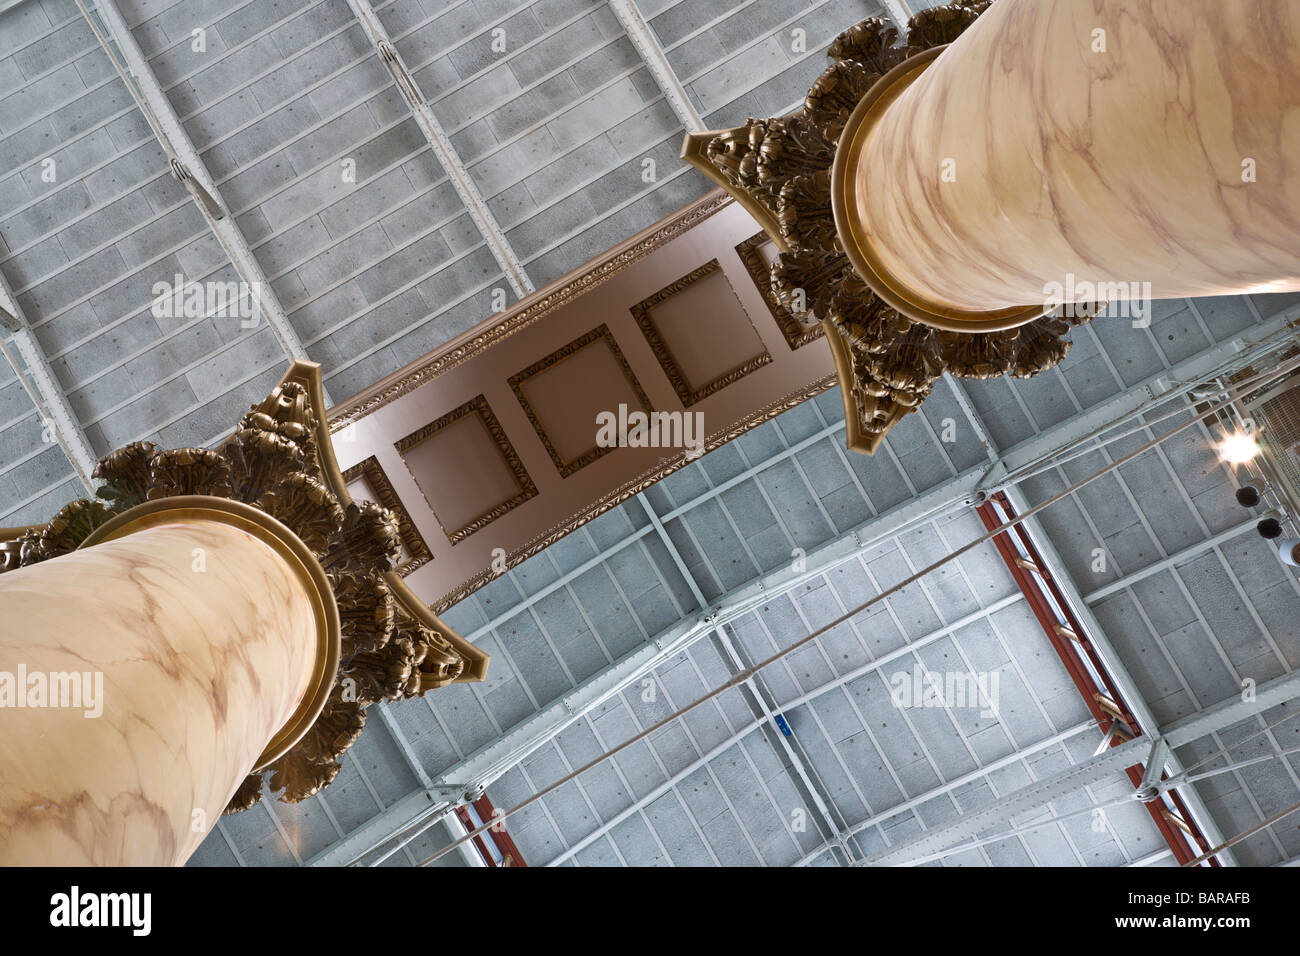 National Building Museum in Washington, DC, a museum of architecture, design, engineering, construction, and urban - Stock Image